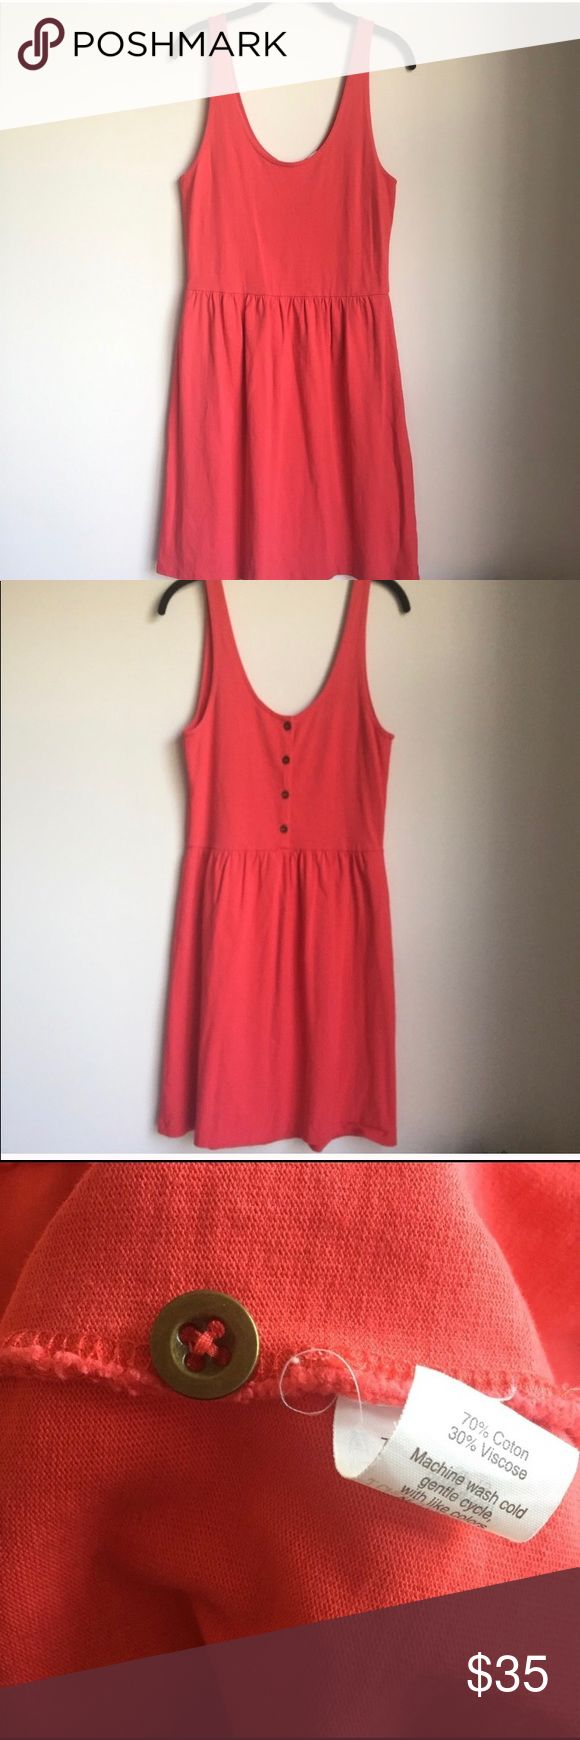 🍭J. Crew Bright Coral Sundress Beautiful Coral color- perfect for summer!  Dress has buttons down the back for extra bit of cuteness. (There is a button sewn inside of dress- pic 3).  Very good condition! Dresses